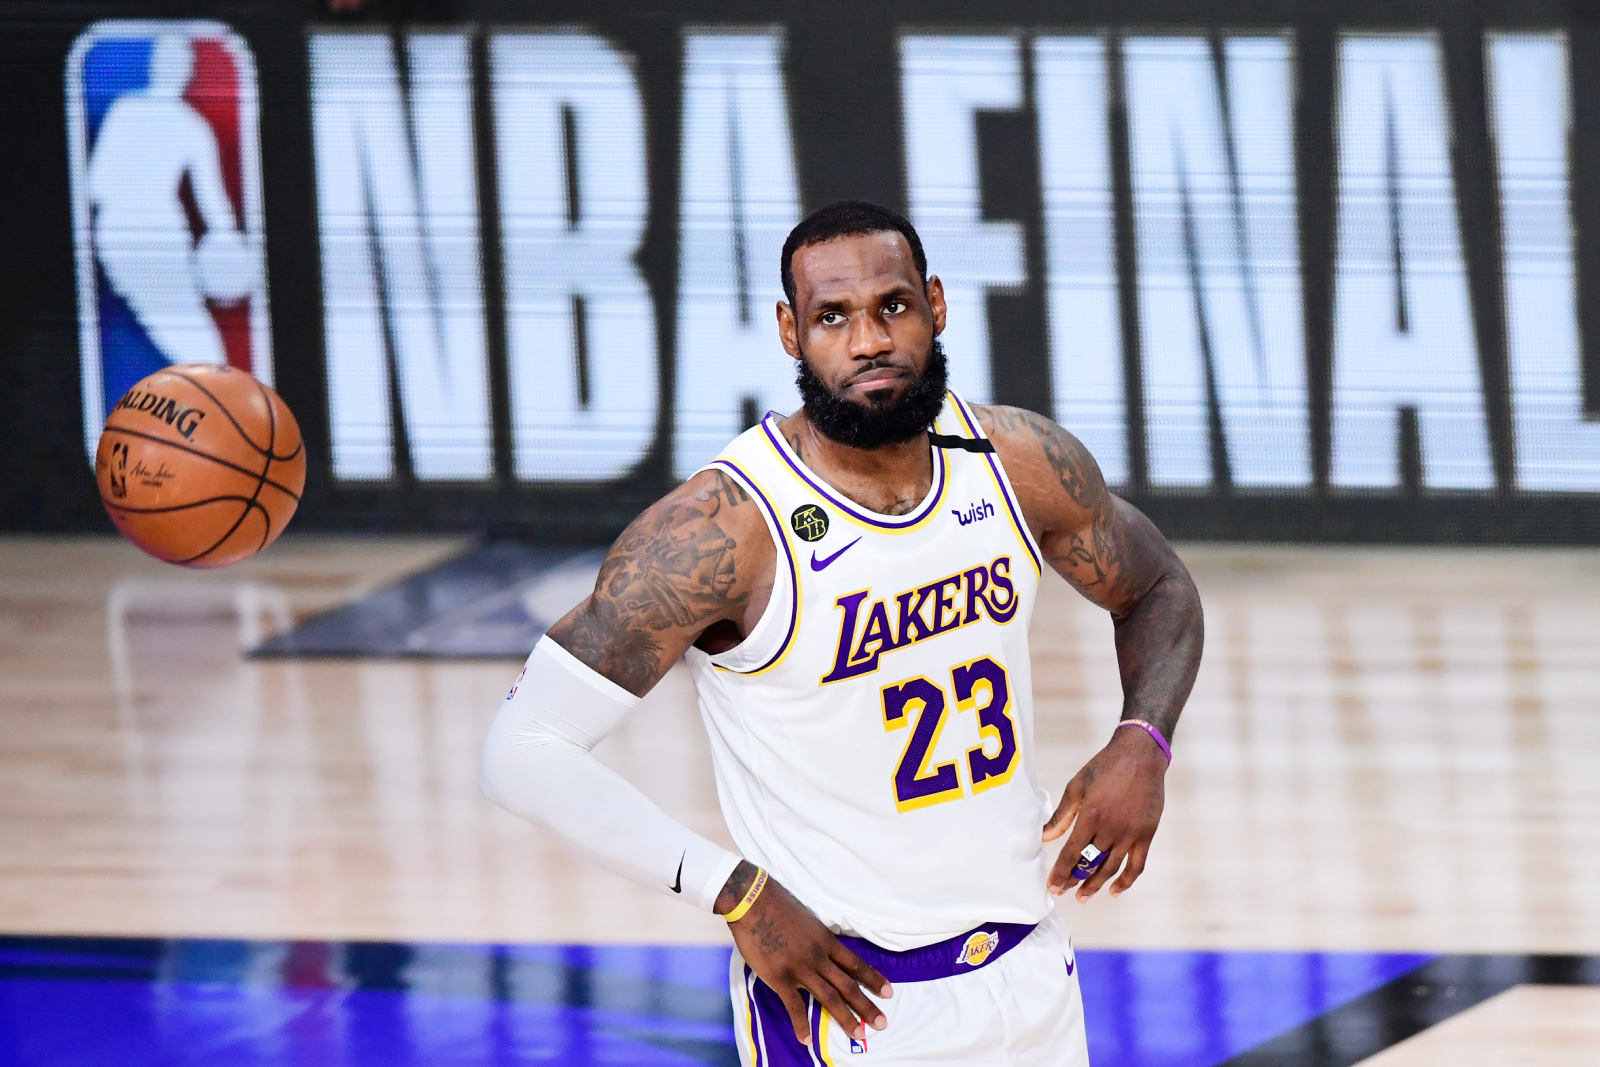 LeBron James has used his massive platform for good over the years. Recently, he helped take down two scammers trying to rig the election.